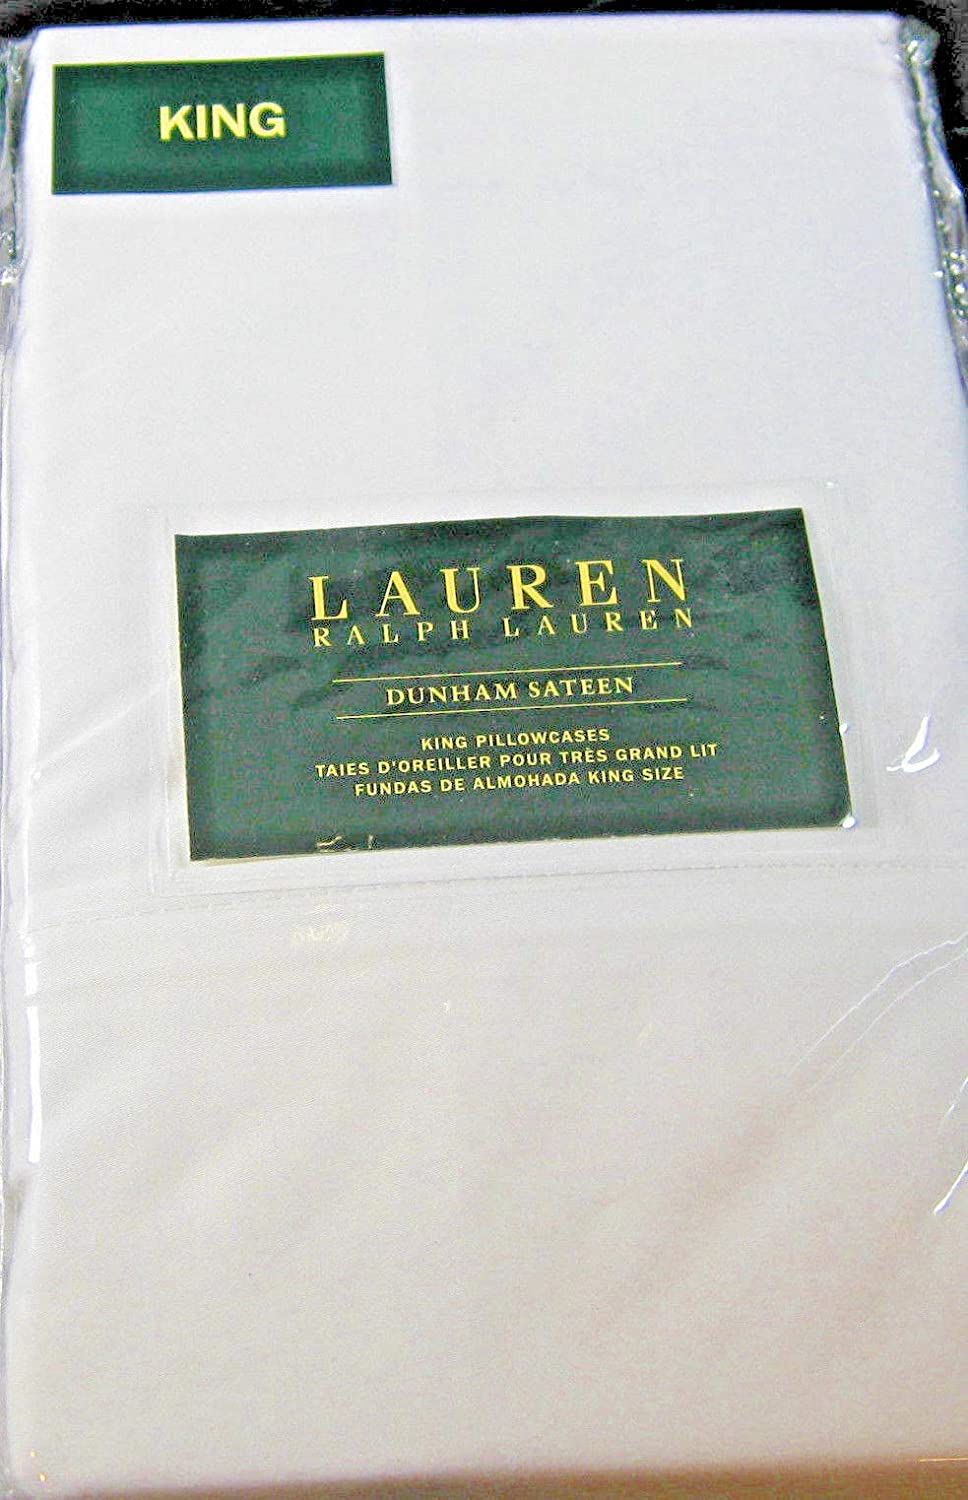 Ralph Lauren Set of Dunham Sateen King Size Pillowcases White -300 Thread Count 100% Cotton-